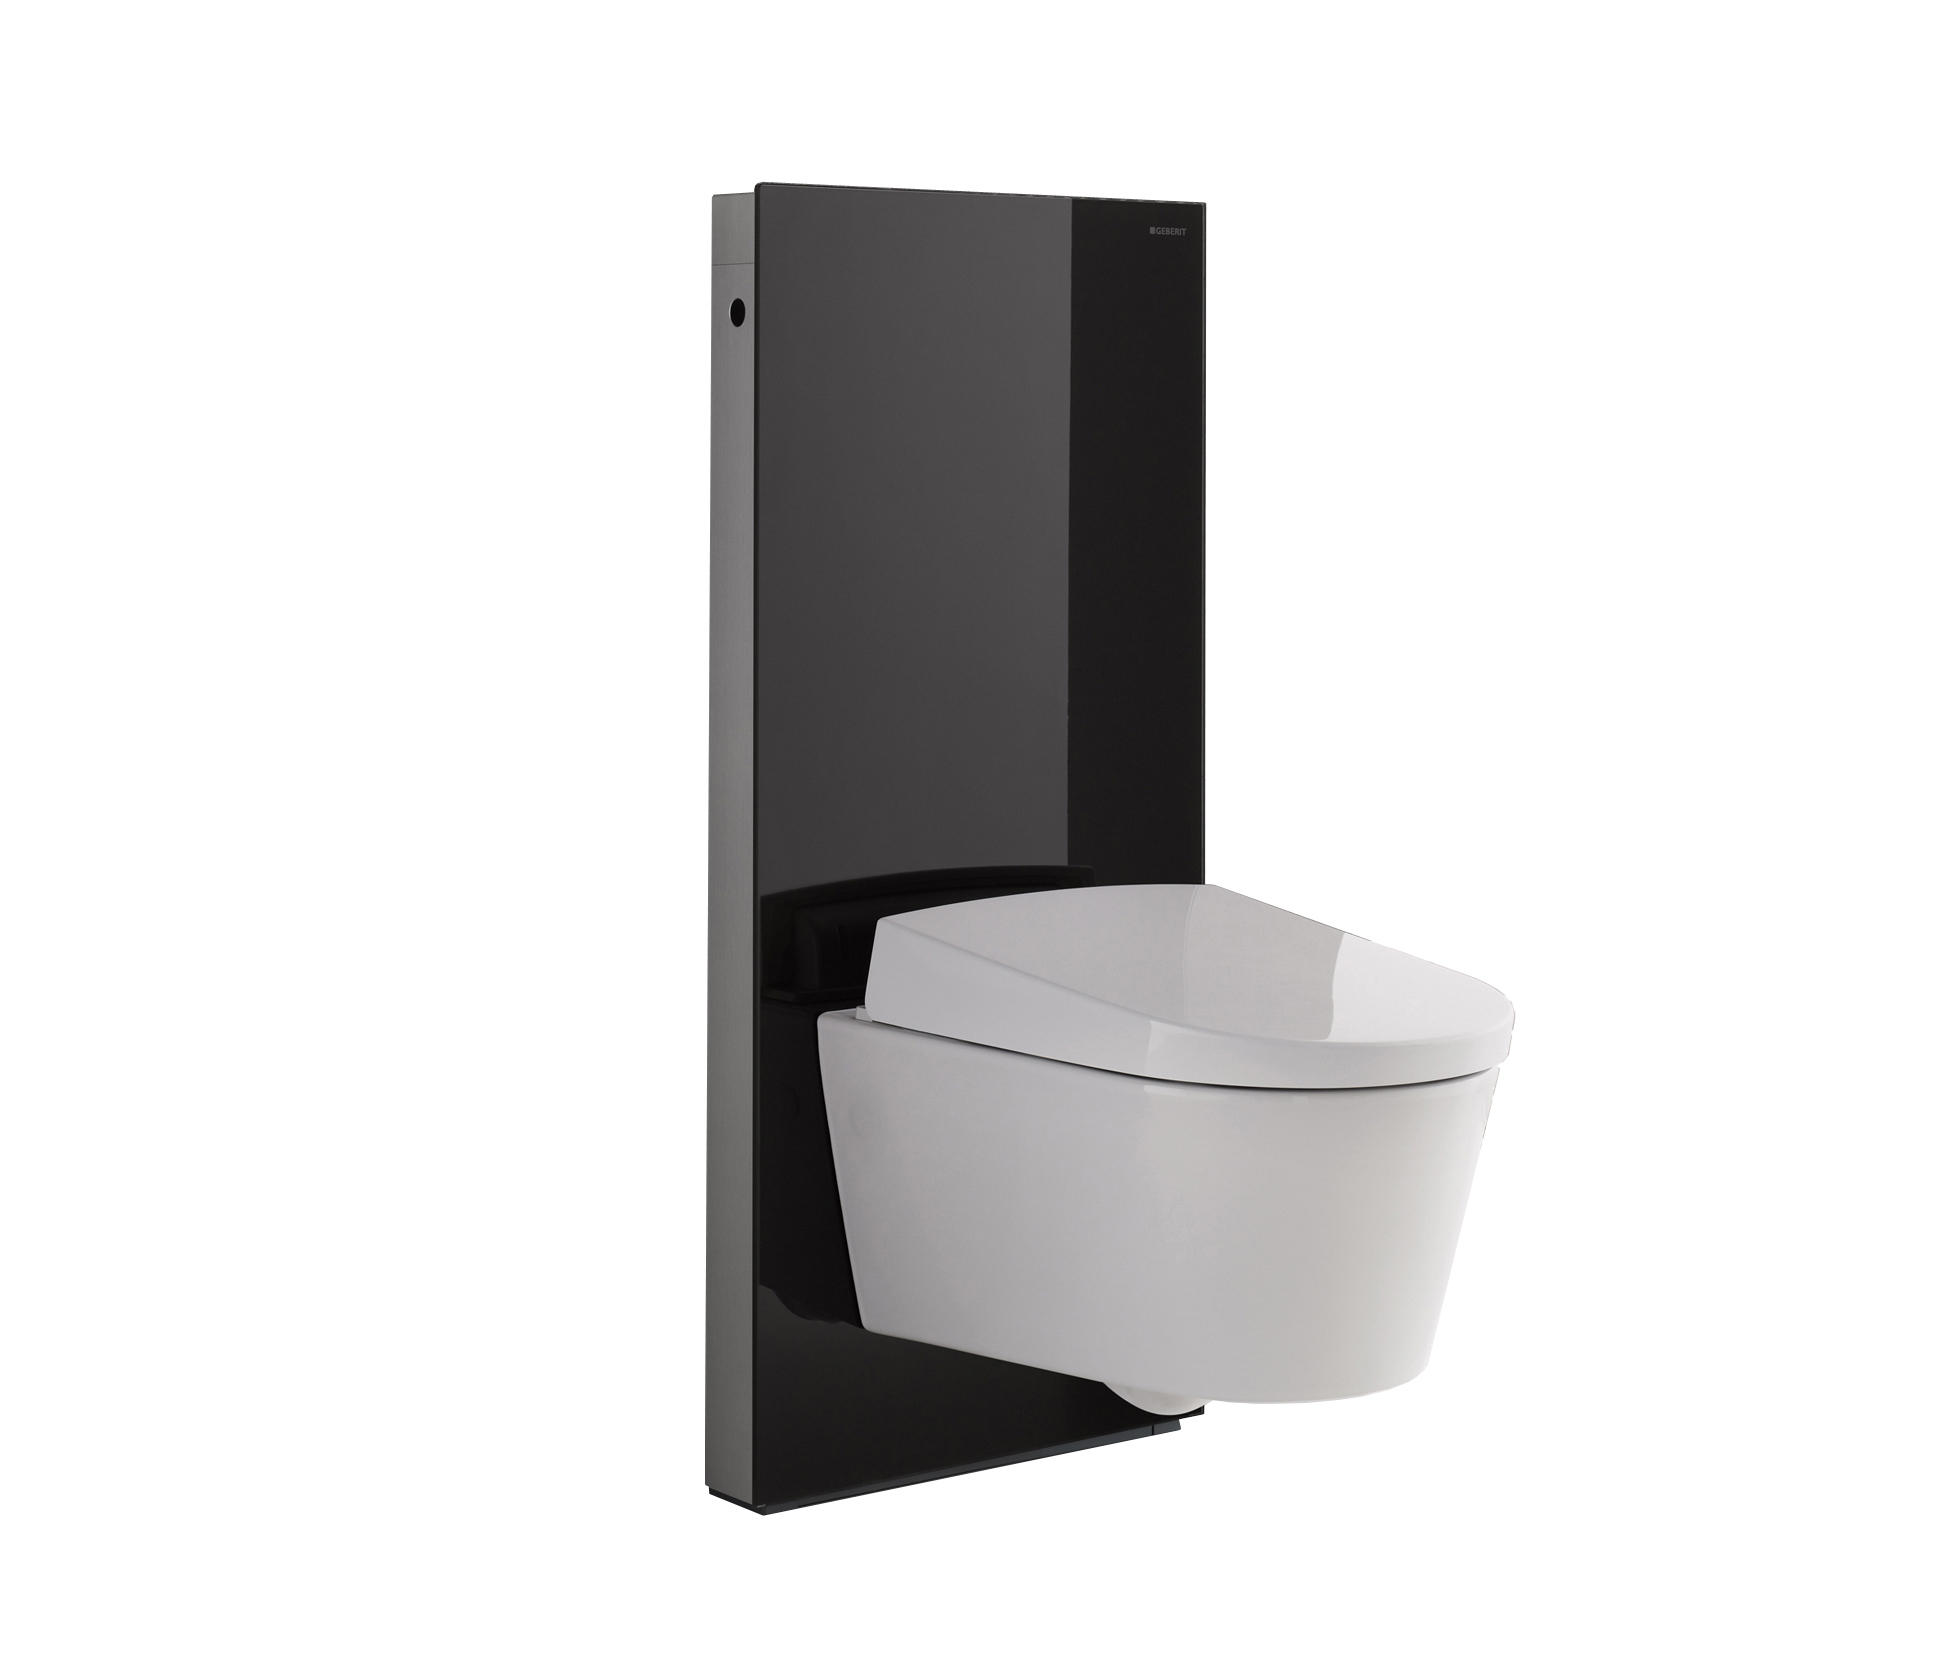 Geberit monolith sanitary module for wcs toilets from for Geberit products